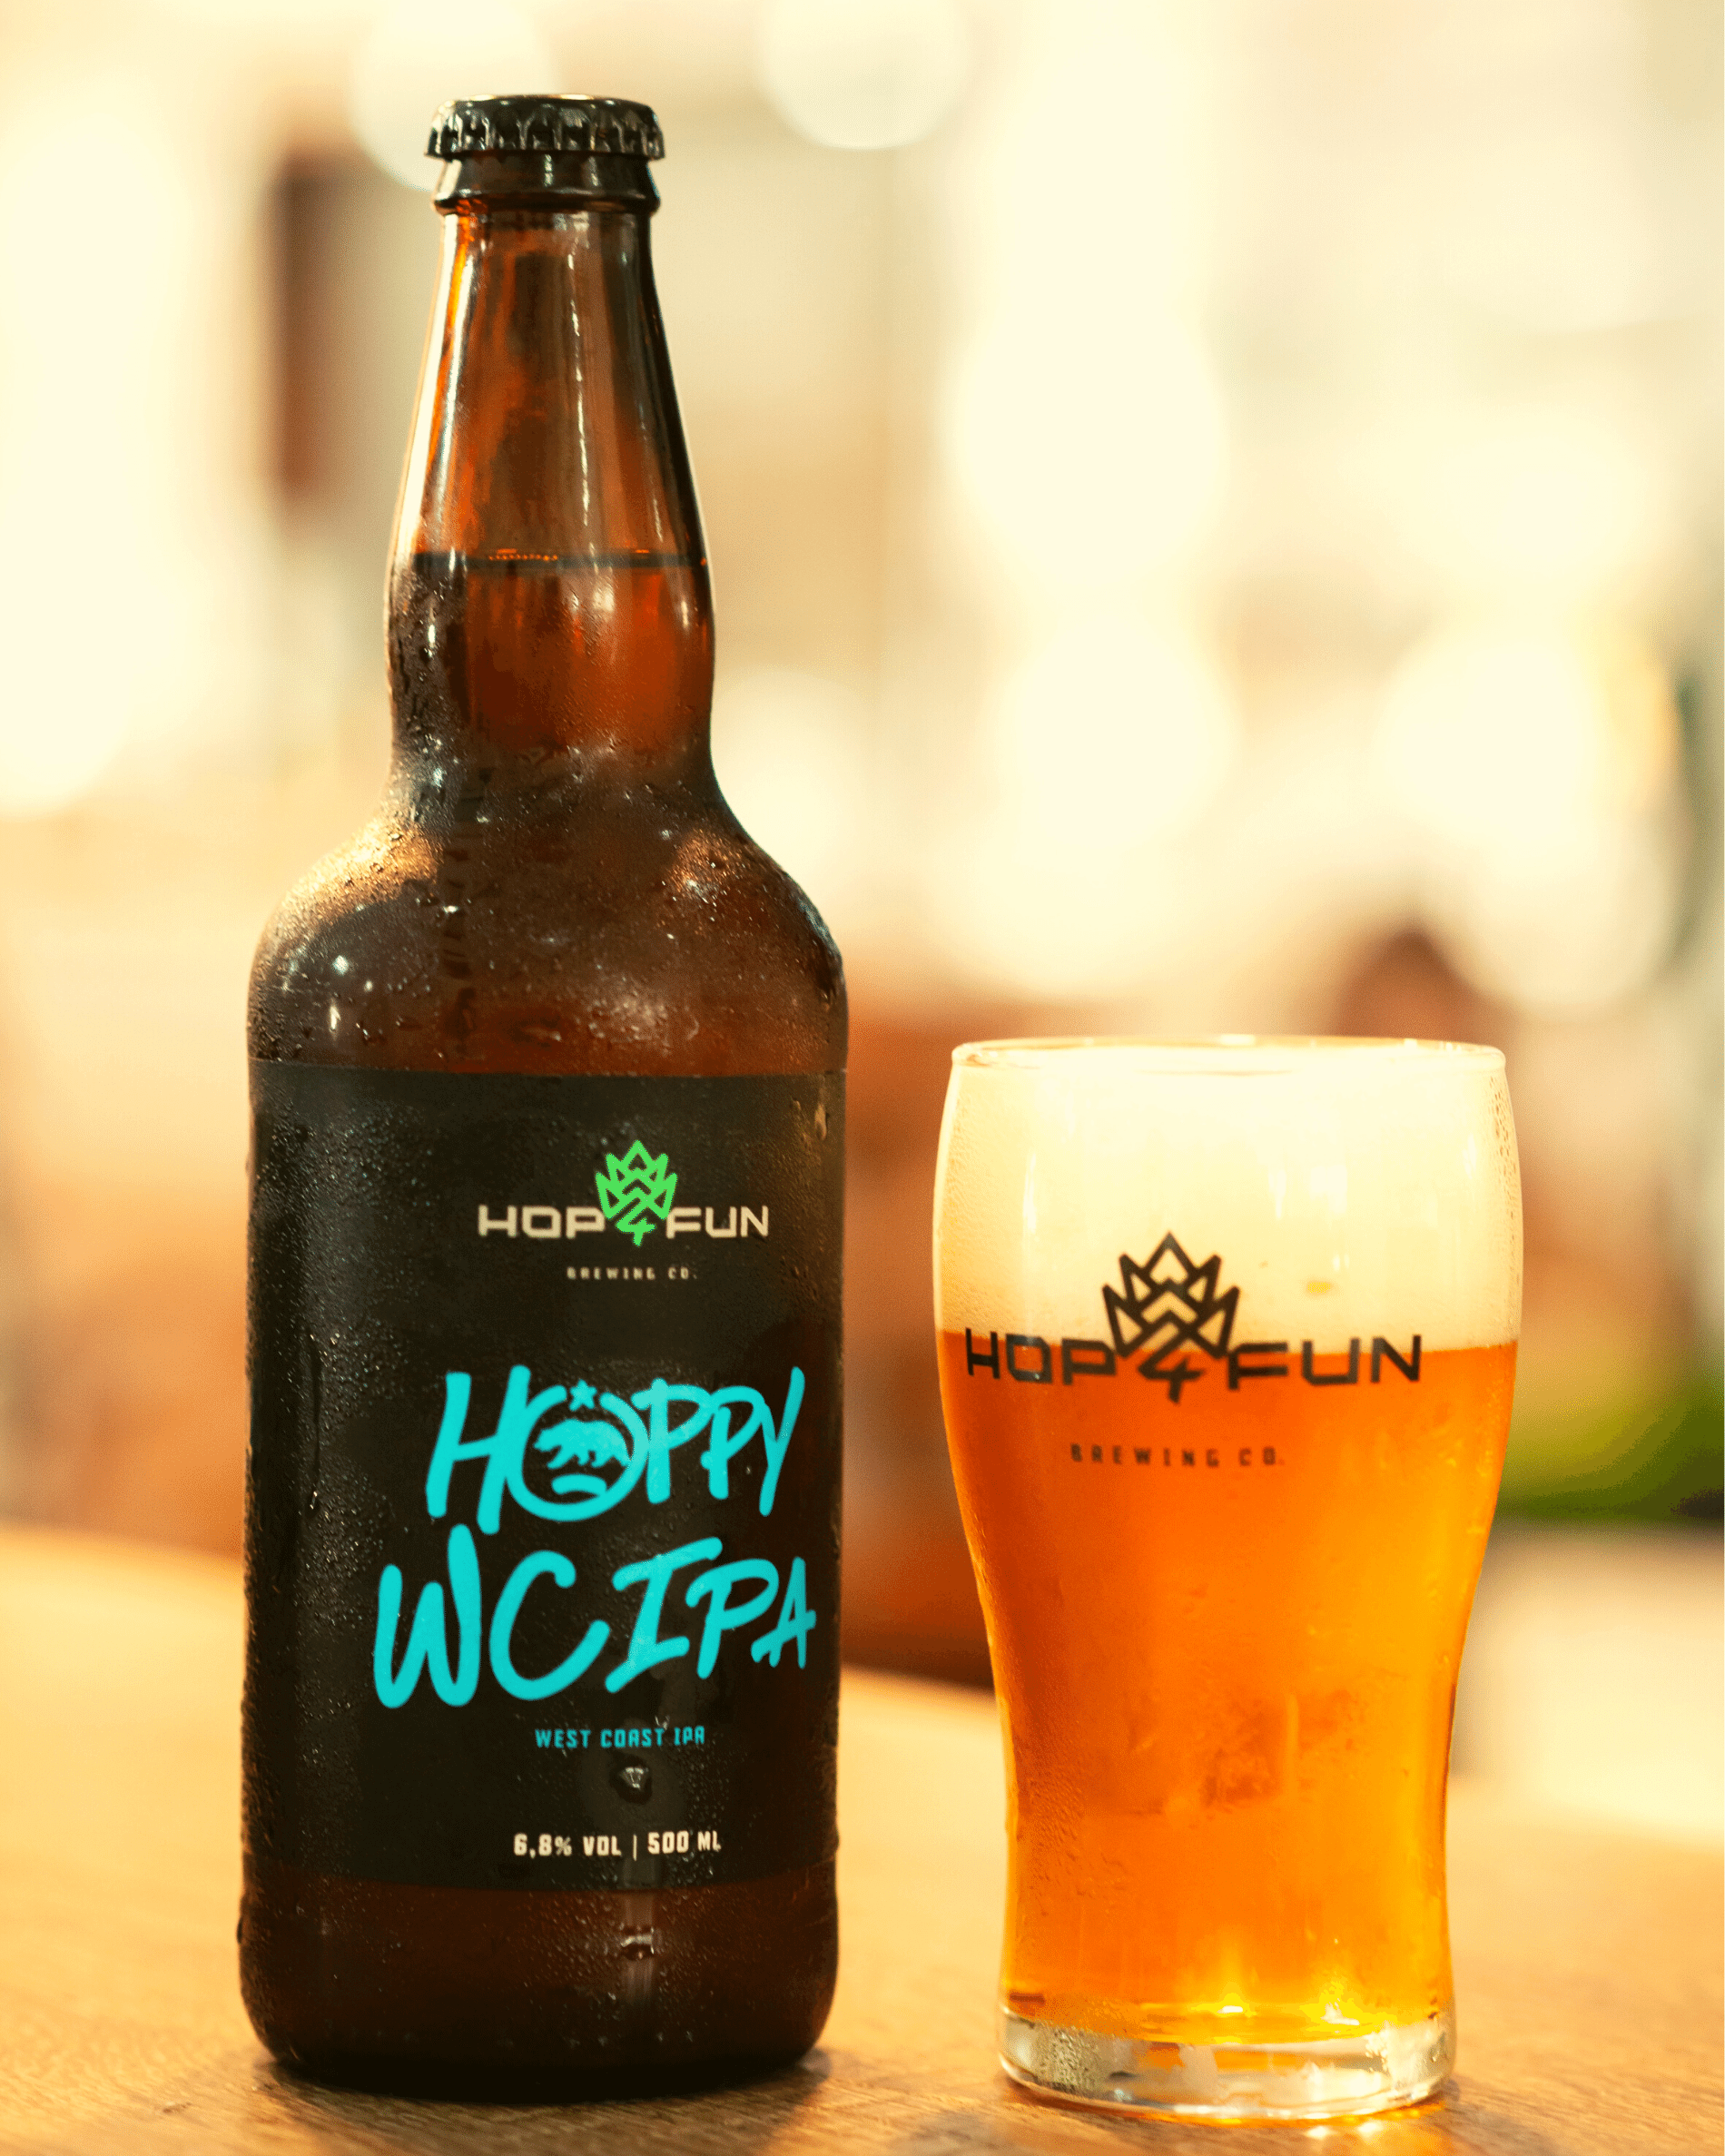 Hop For Fun cervejas especiais Hoppy WC Ipa